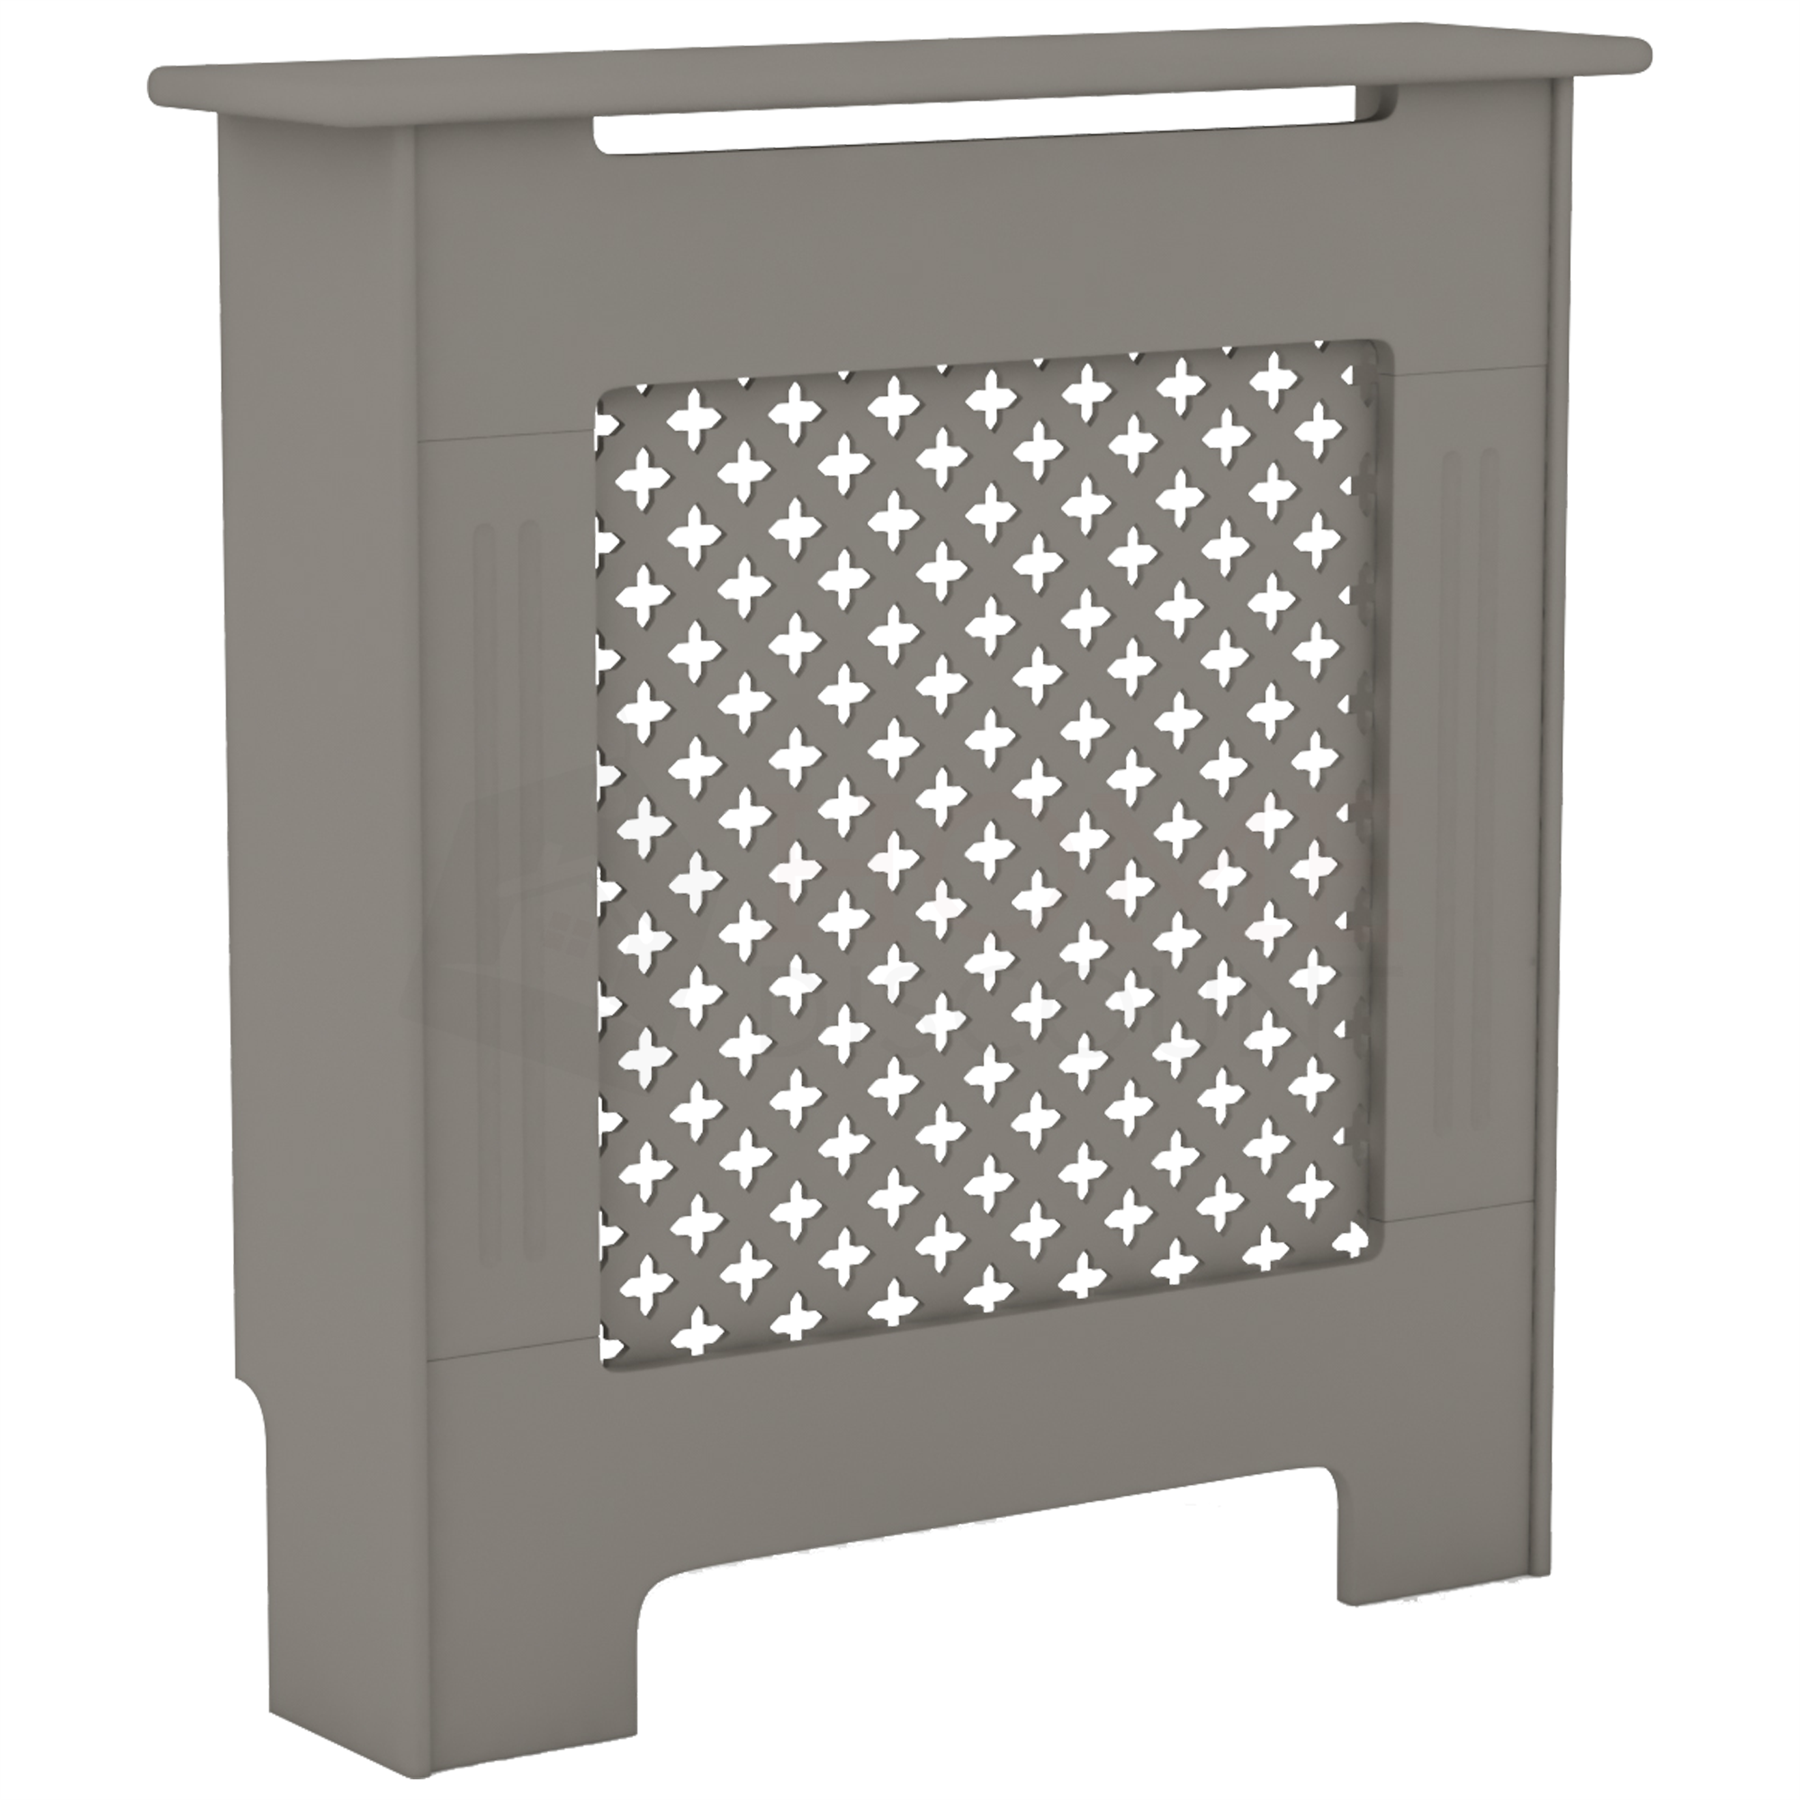 Radiateur-Housse-Blanc-inachevee-MODERNE-BOIS-TRADITIONNELLE-Grill-cabinet-furniture miniature 209